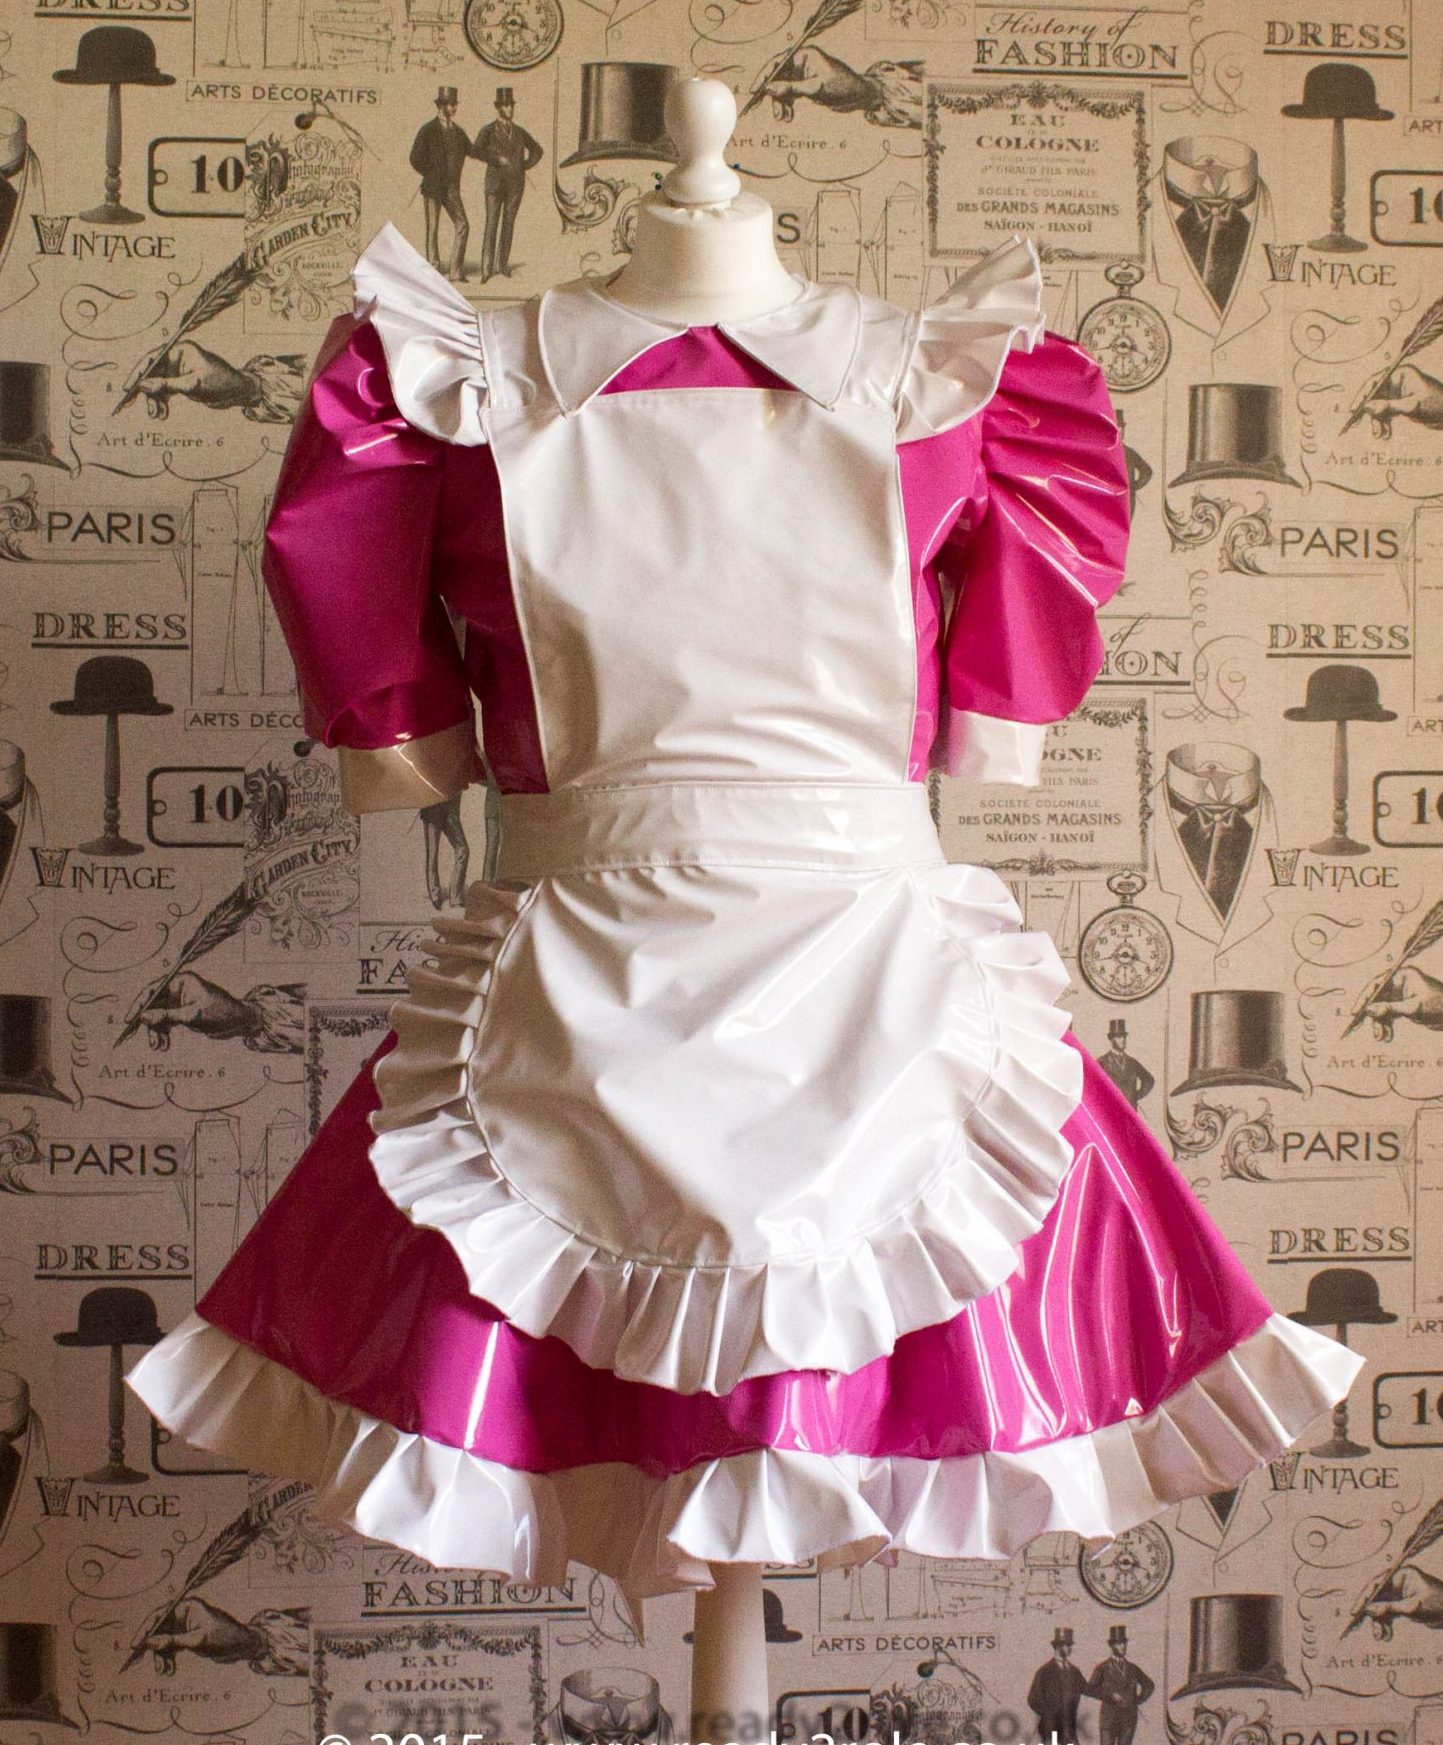 Alice Even More Sissy PVC Maid Dress With Full Apron – Pink & White Version